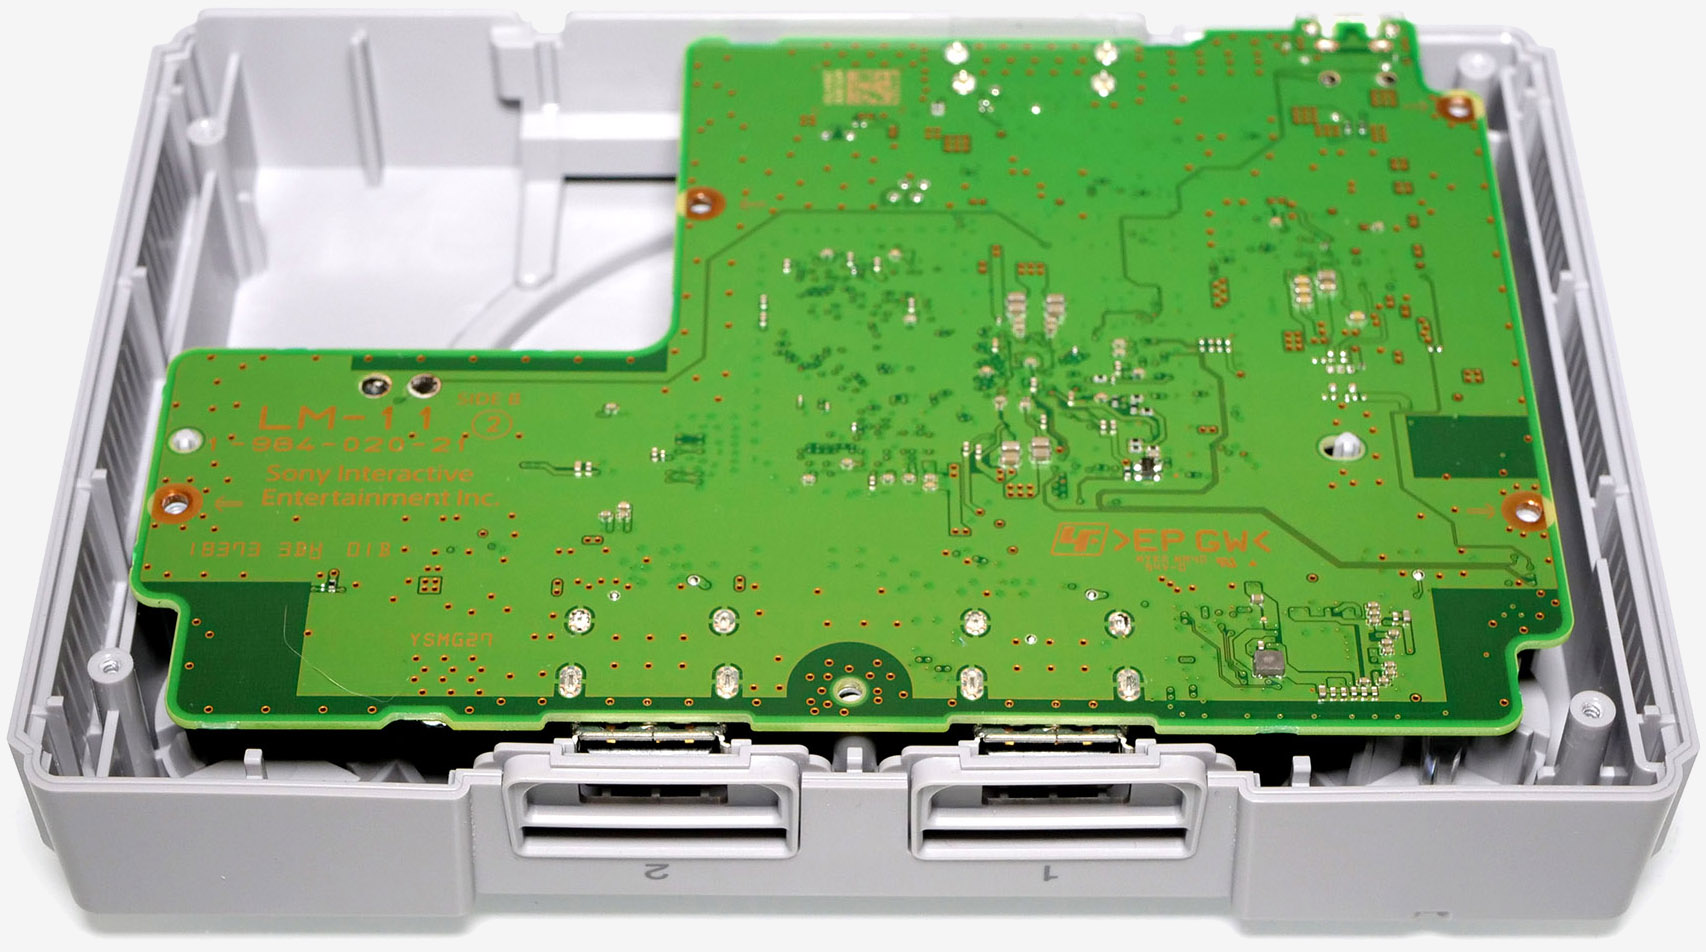 PlayStation Classic teardown reveals mobile ARM chipset on a custom